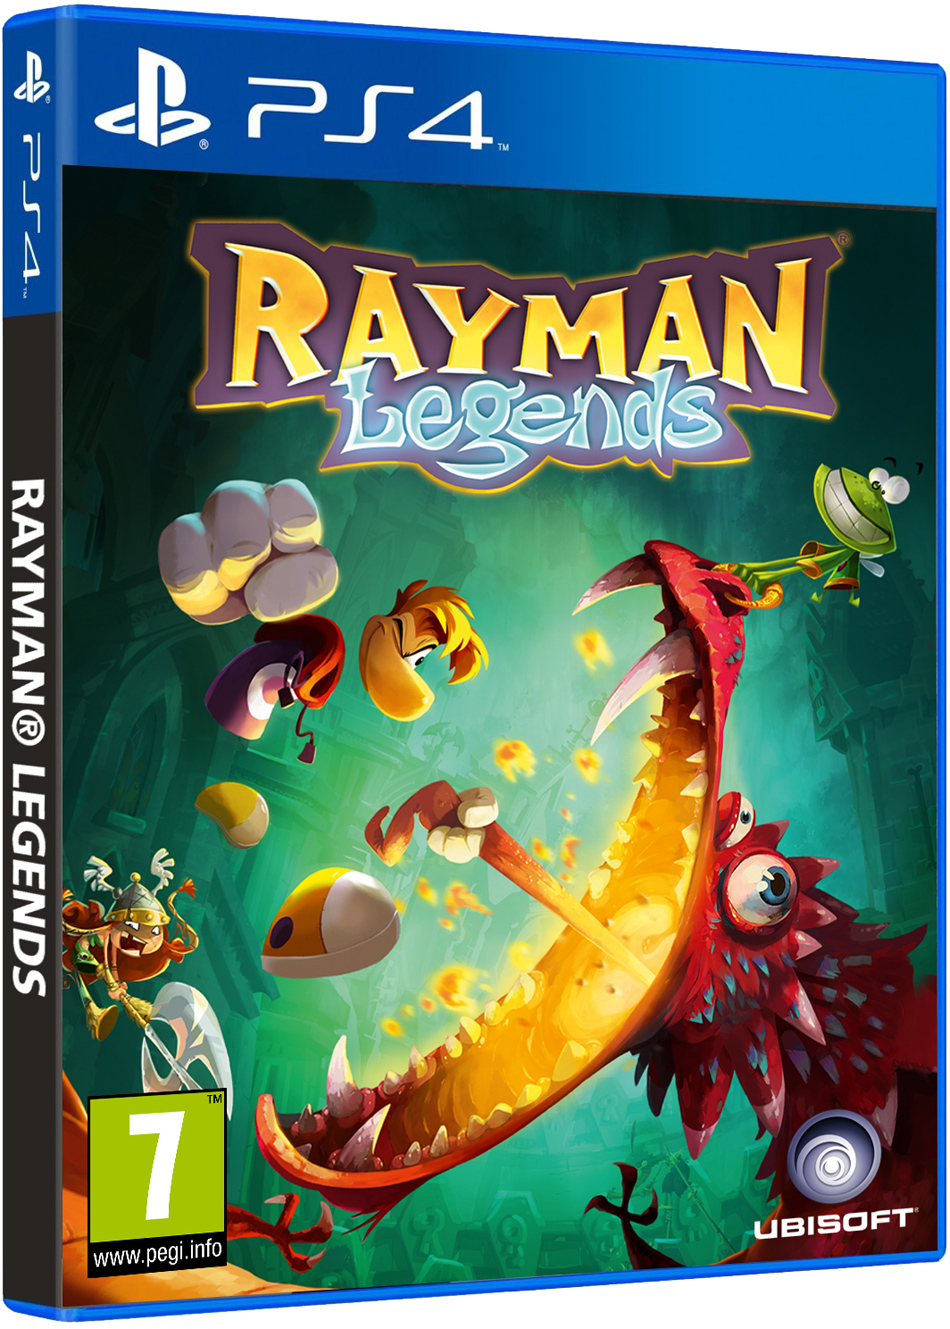 Rayman Legends coming to PlayStation 4 in February